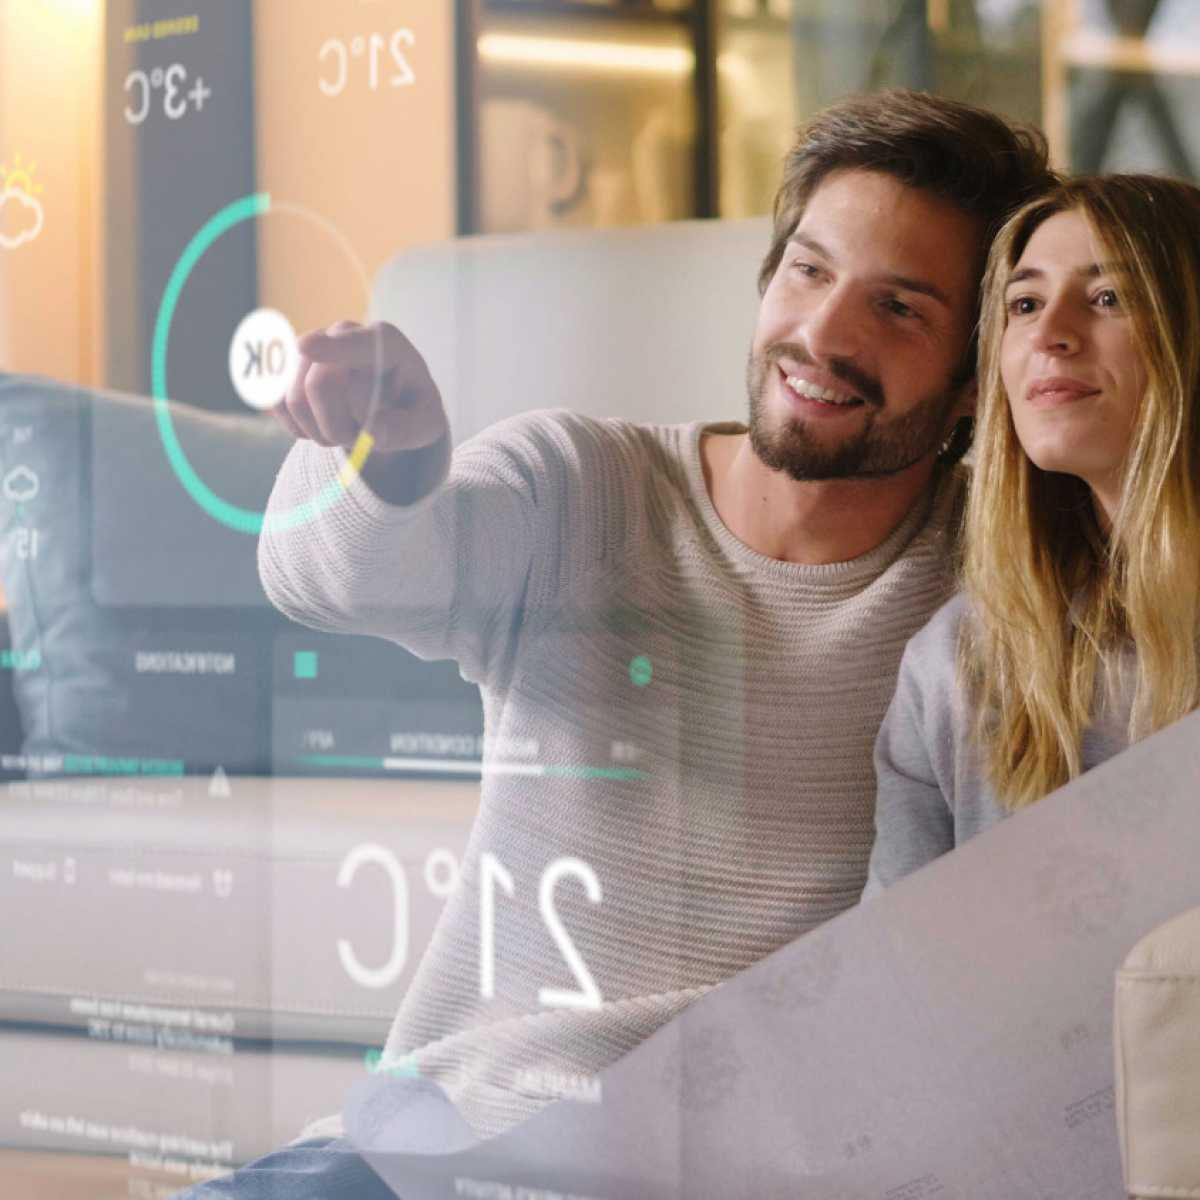 The smart homes trend